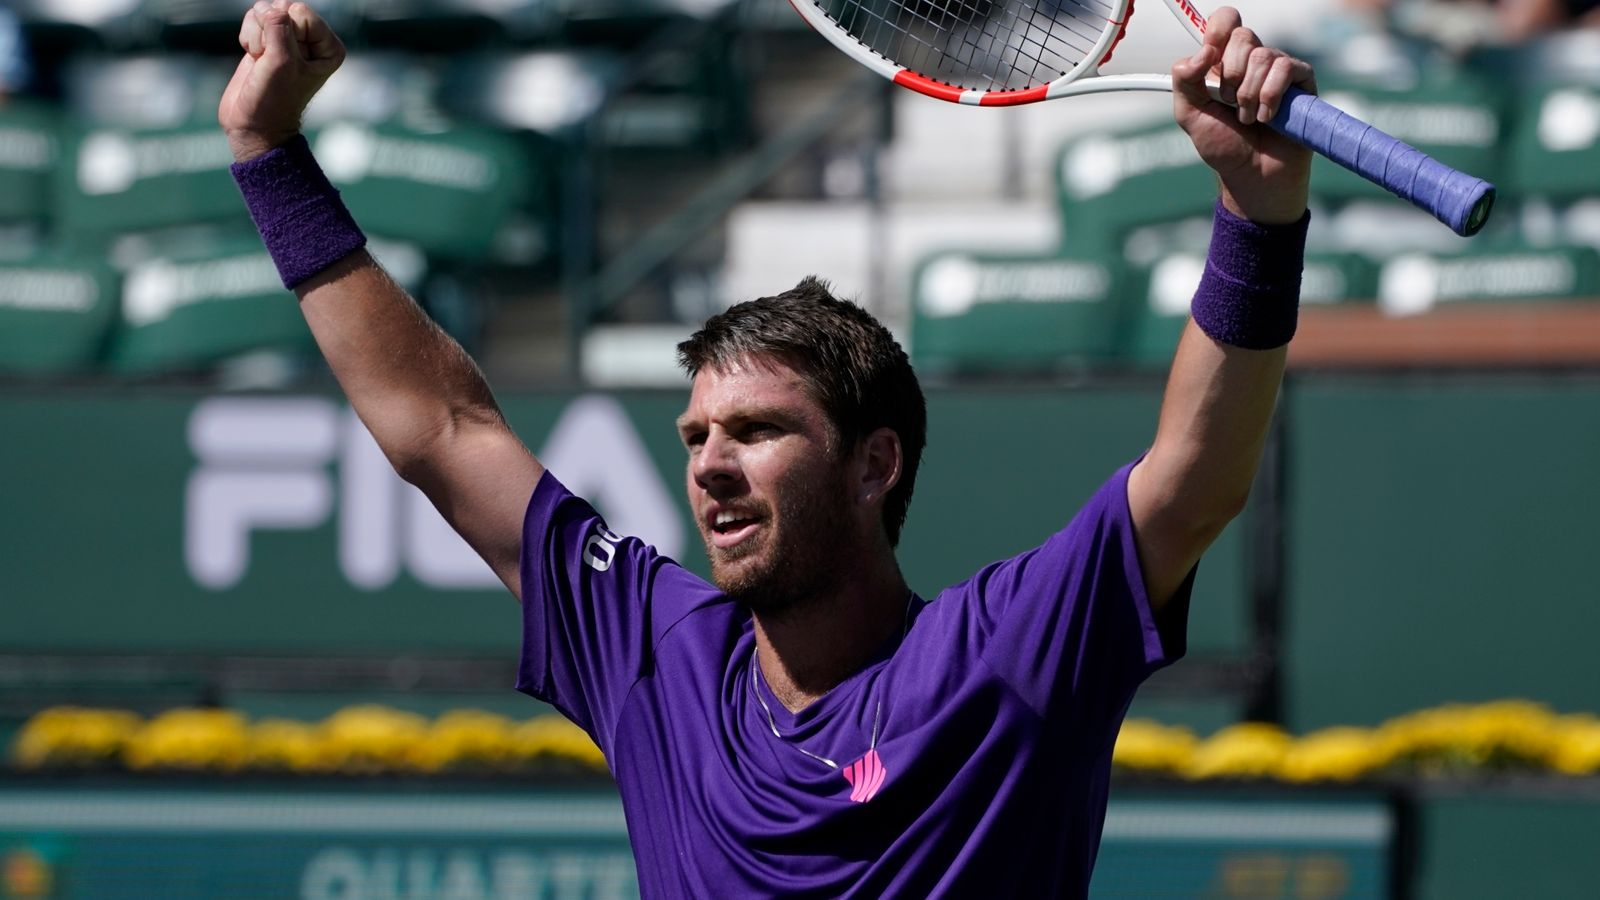 Cameron Norrie reaches Indian Wells semi-finals to become British No 1 with win over Diego Schwartzman | Tennis News